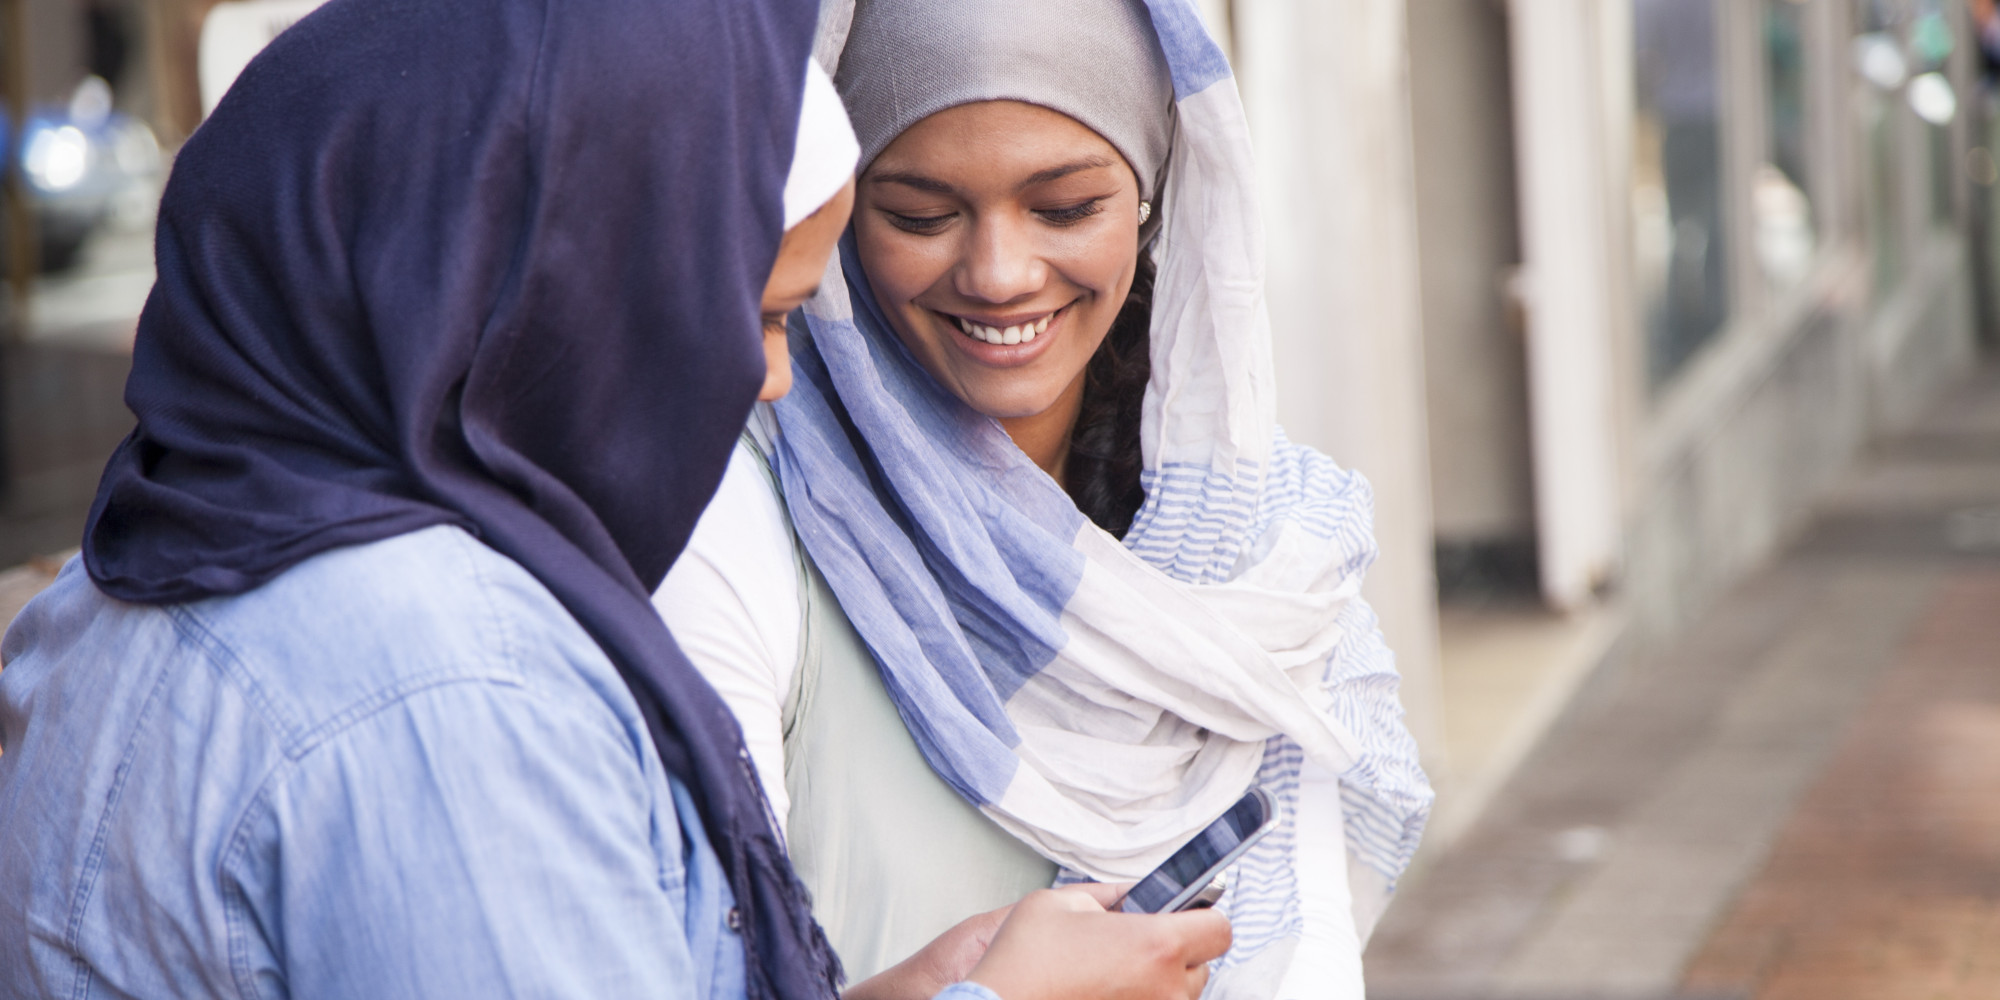 richibucto muslim girl personals Meet white muslims welcome to lovehabibi - the website for caucasian and white muslims worldwide whether you're seeking caucasian muslims worldwide or those living closer to your area, you've come to the right place.